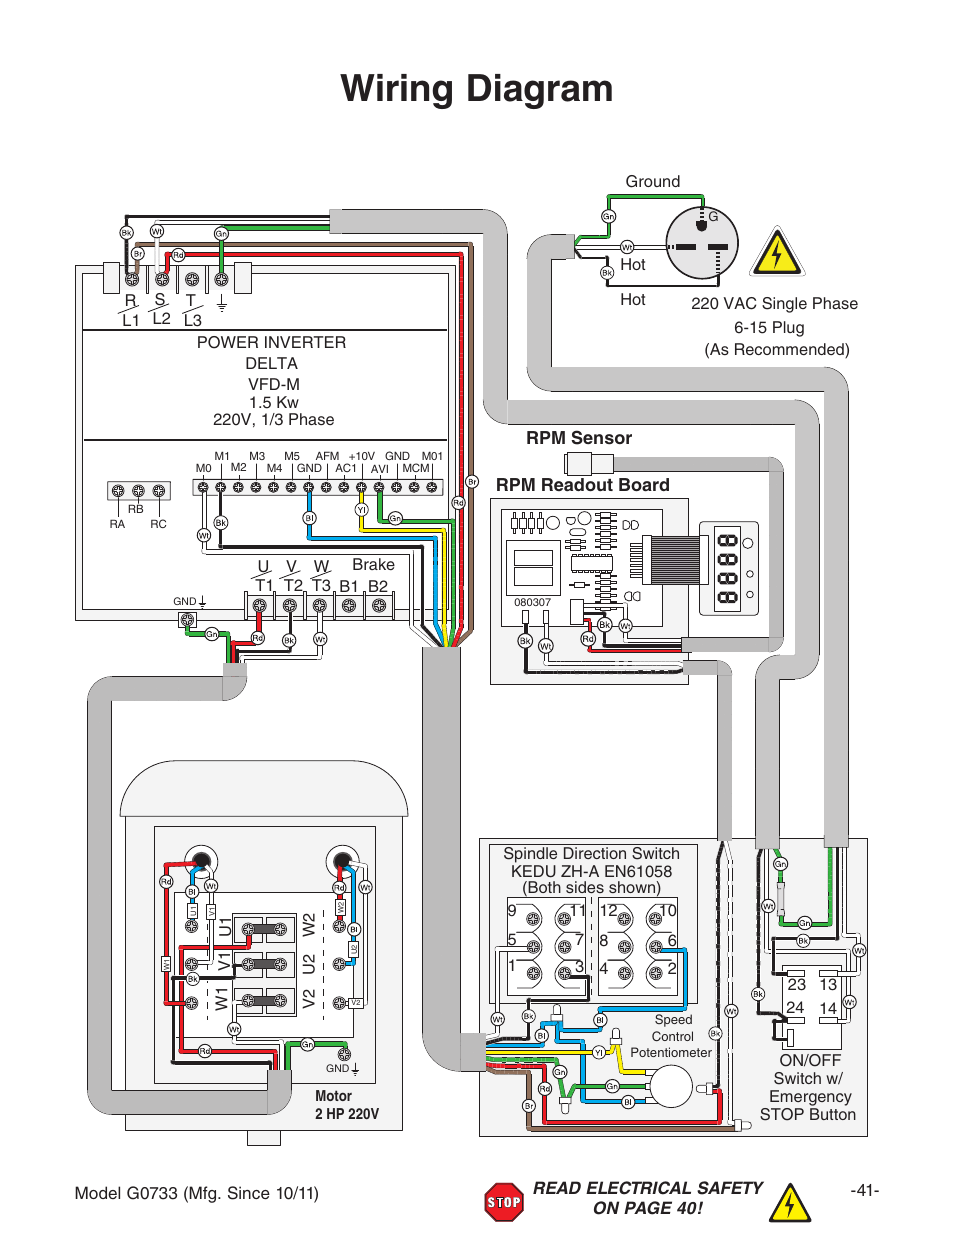 grizzly 18 x 47 wood lathe g0733 page43 wiring diagram, rpm sensor rpm readout board grizzly 18\